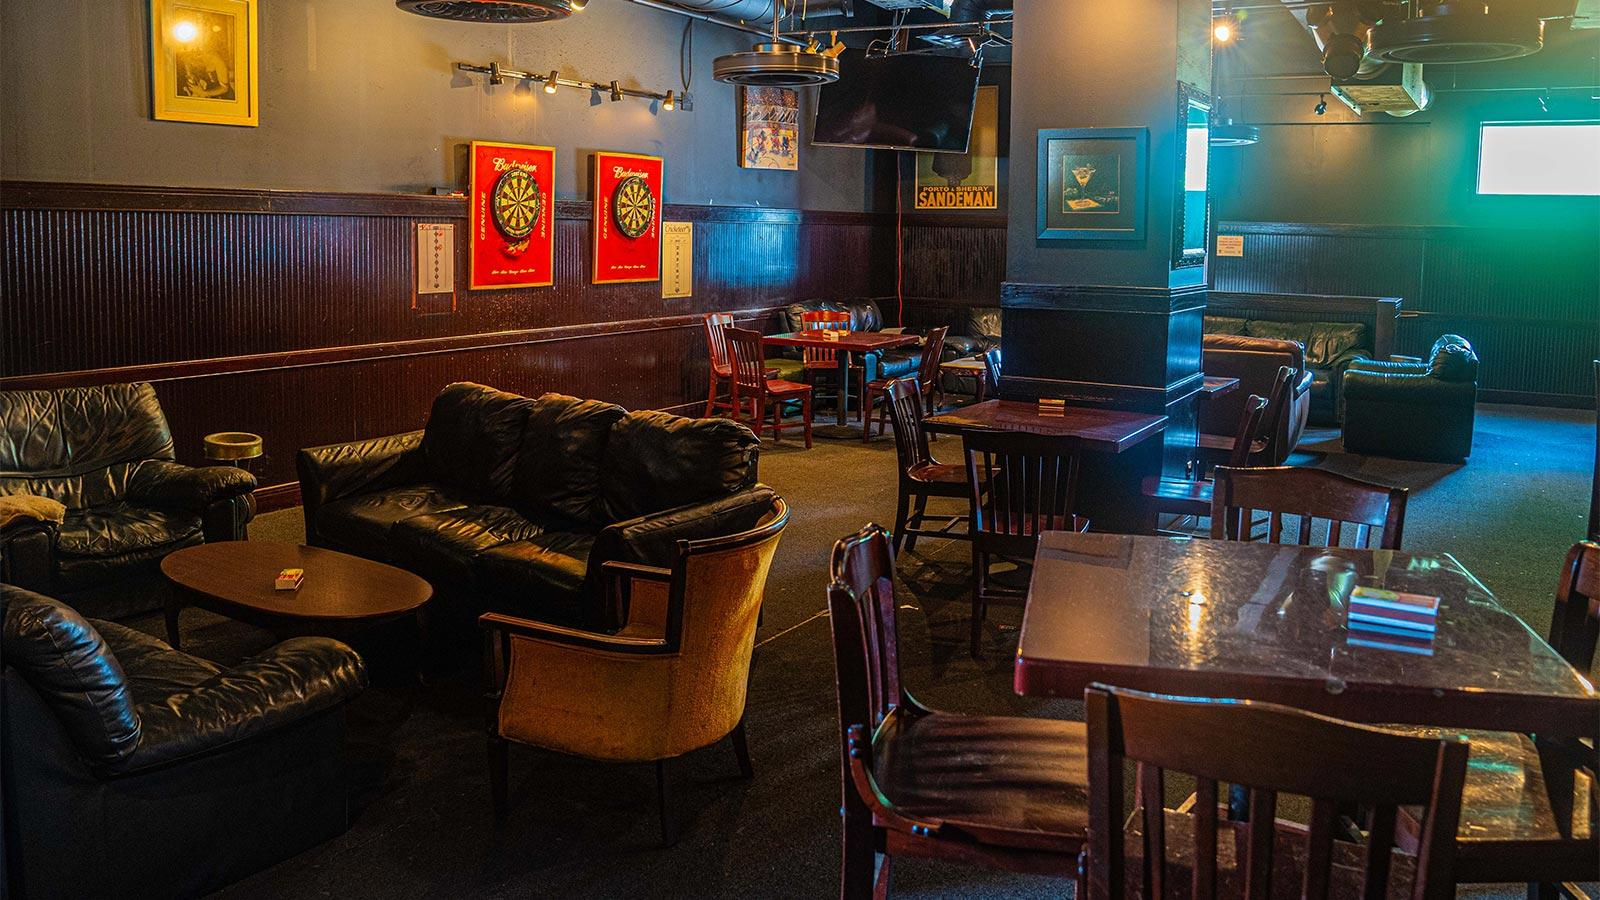 Havana Deluxe is dark, even at midday, with a classic neighborhood pub-meets-basement recreation room vibe